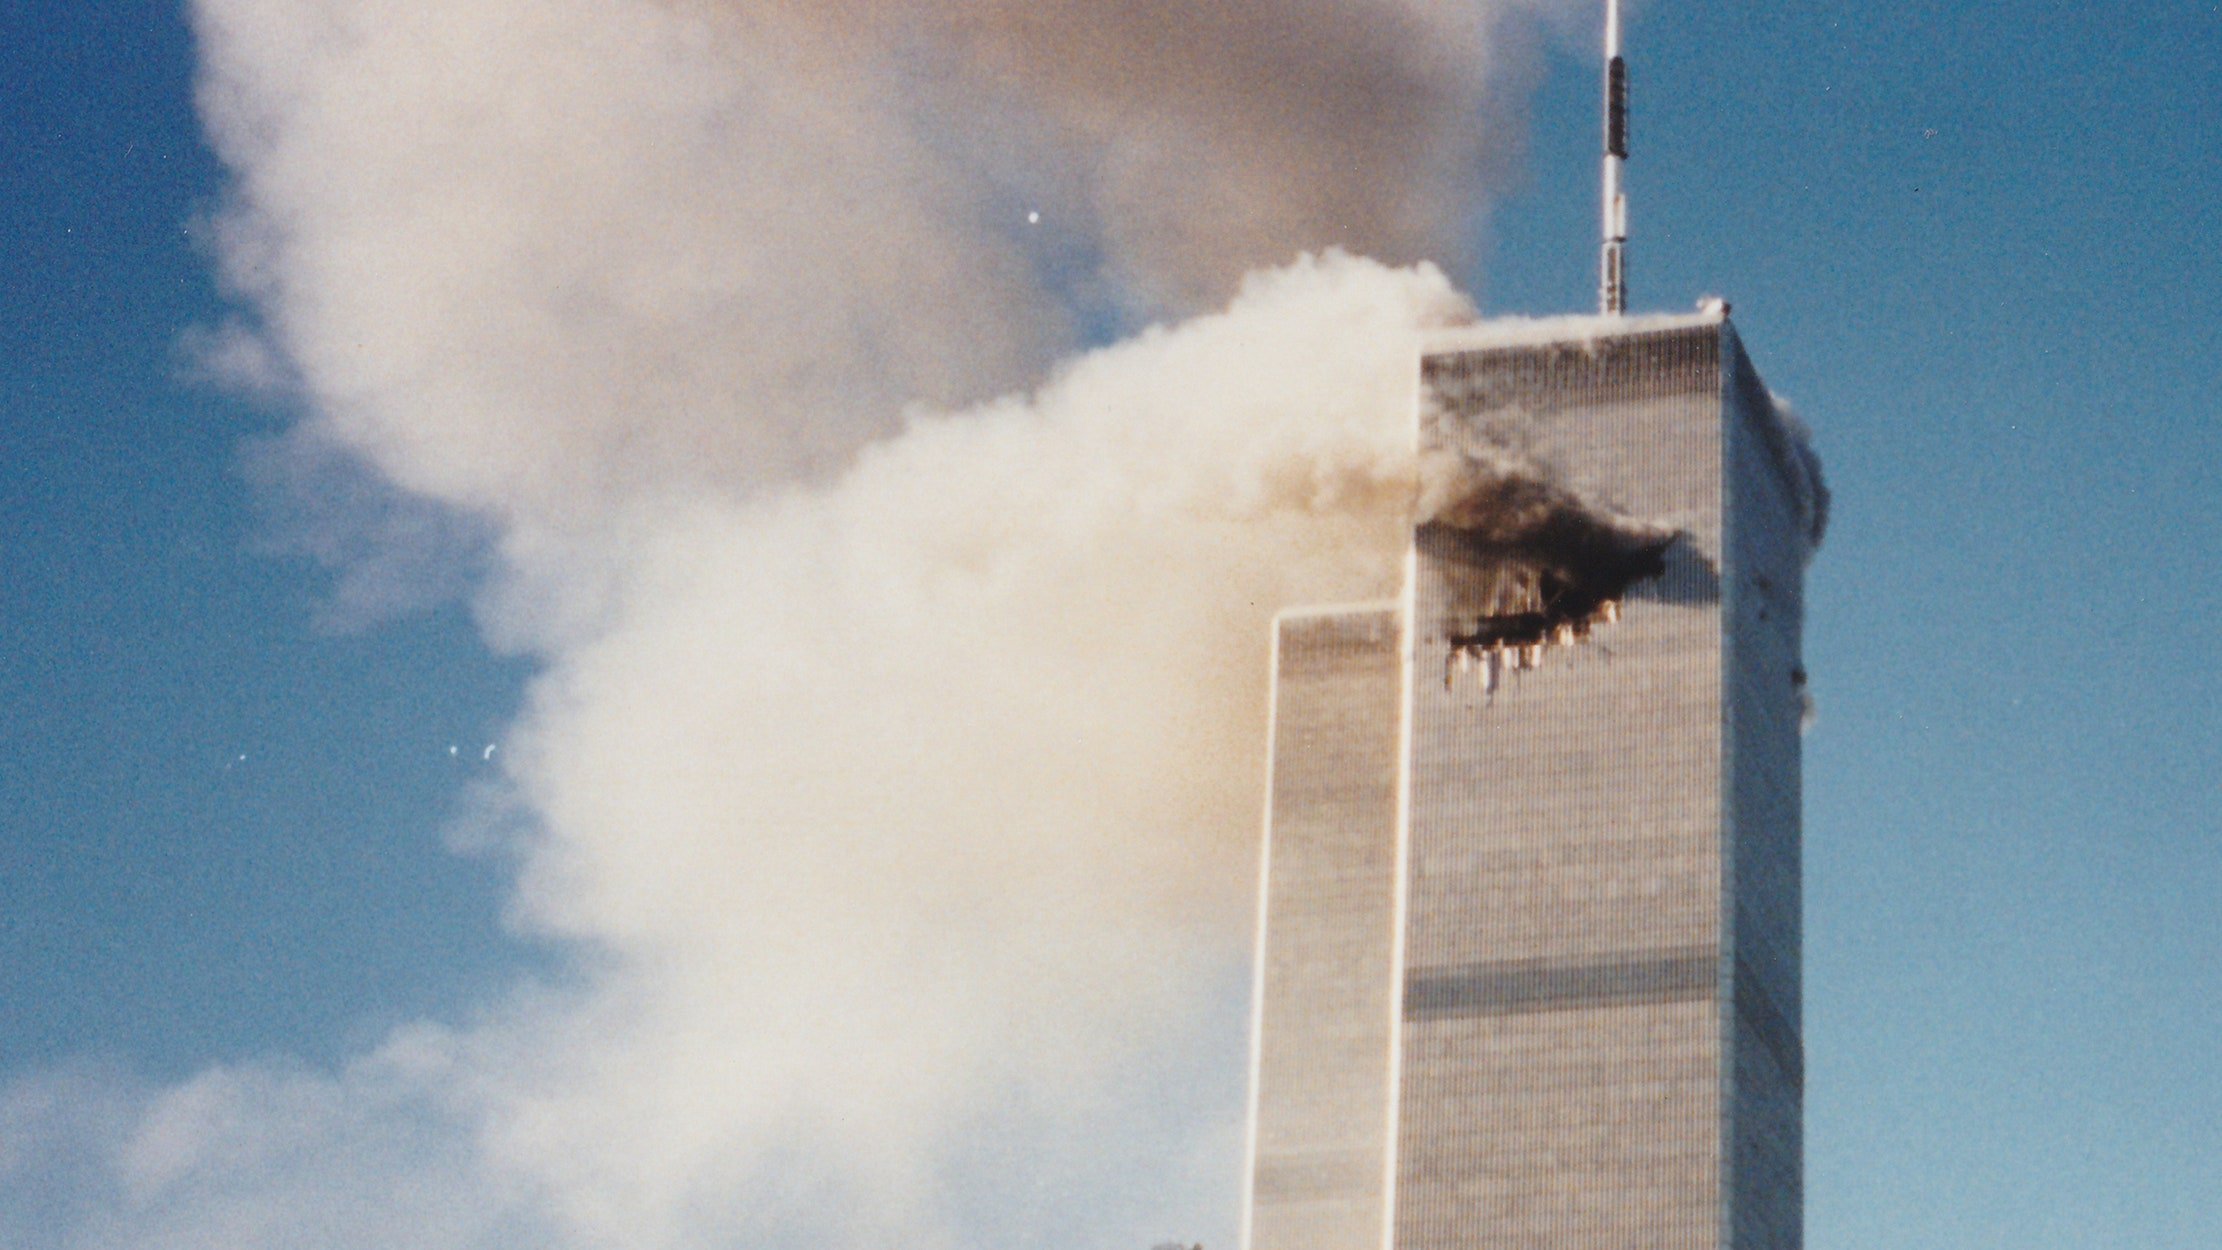 The Lost Calls of 9/11 seriesDetail